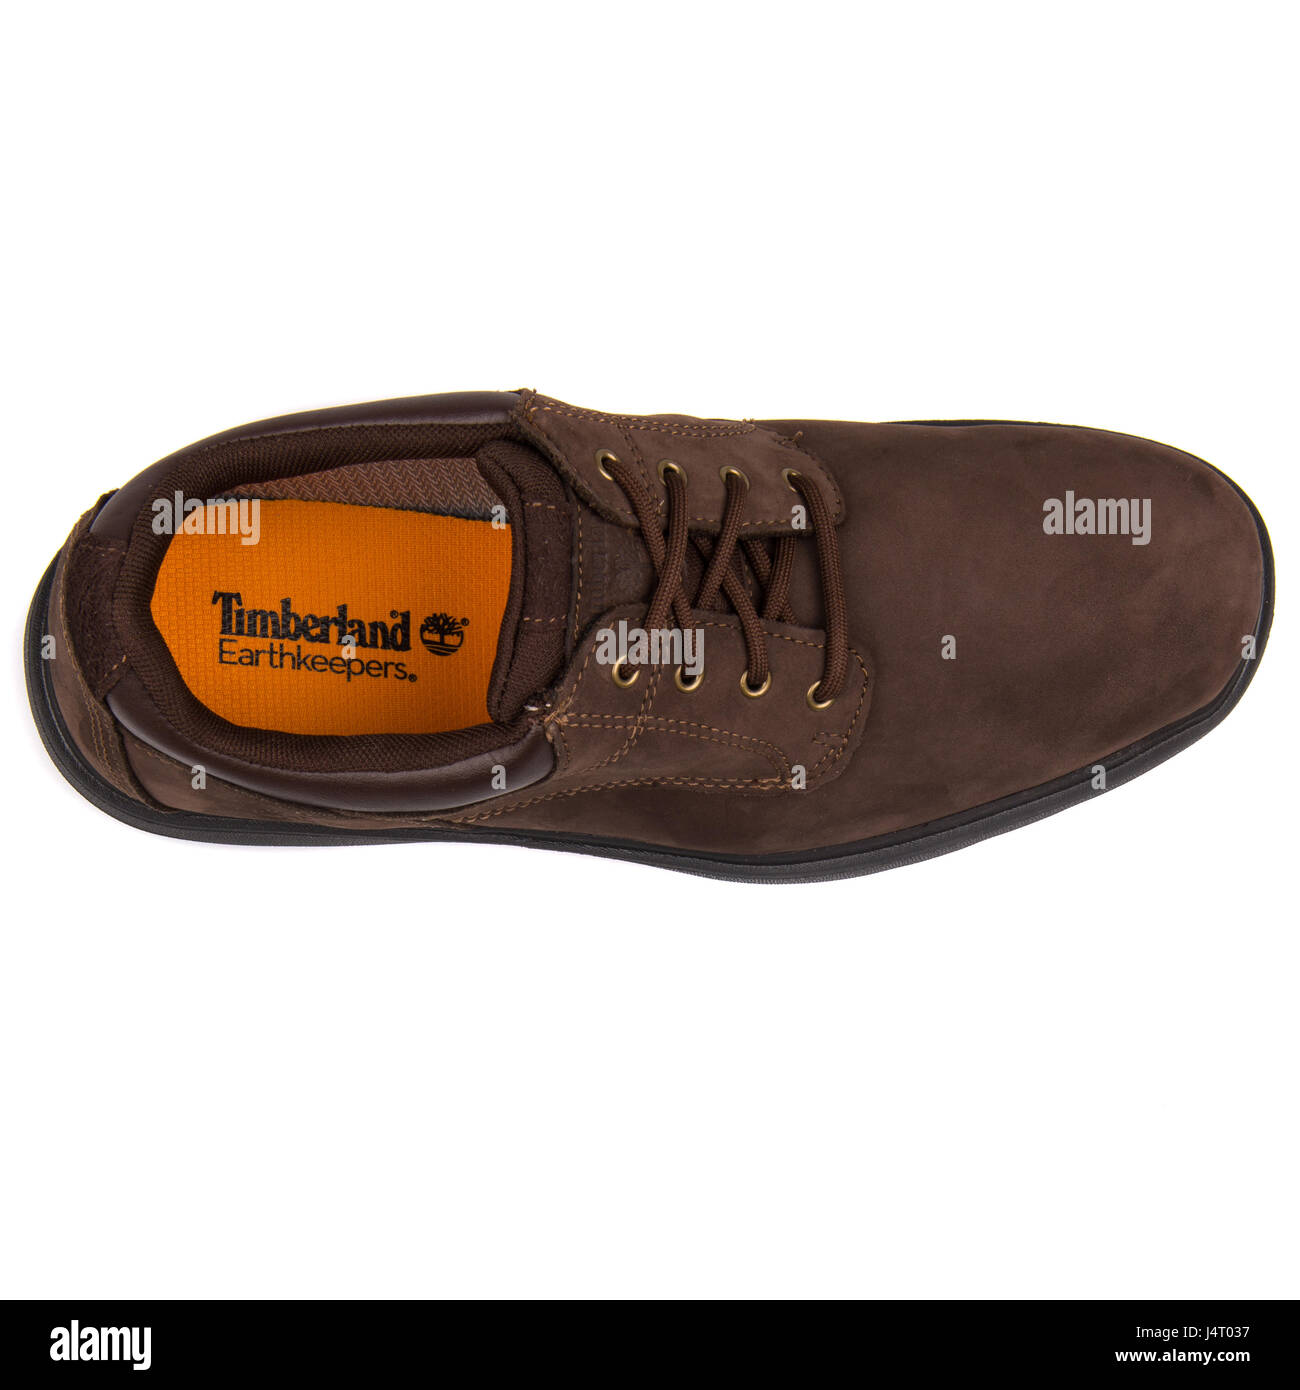 Sandalias Viaje Hay una tendencia  Timberland Earthkeepers Richmont Oxford GTX Shoe Dark Brown Leather Stock  Photo - Alamy